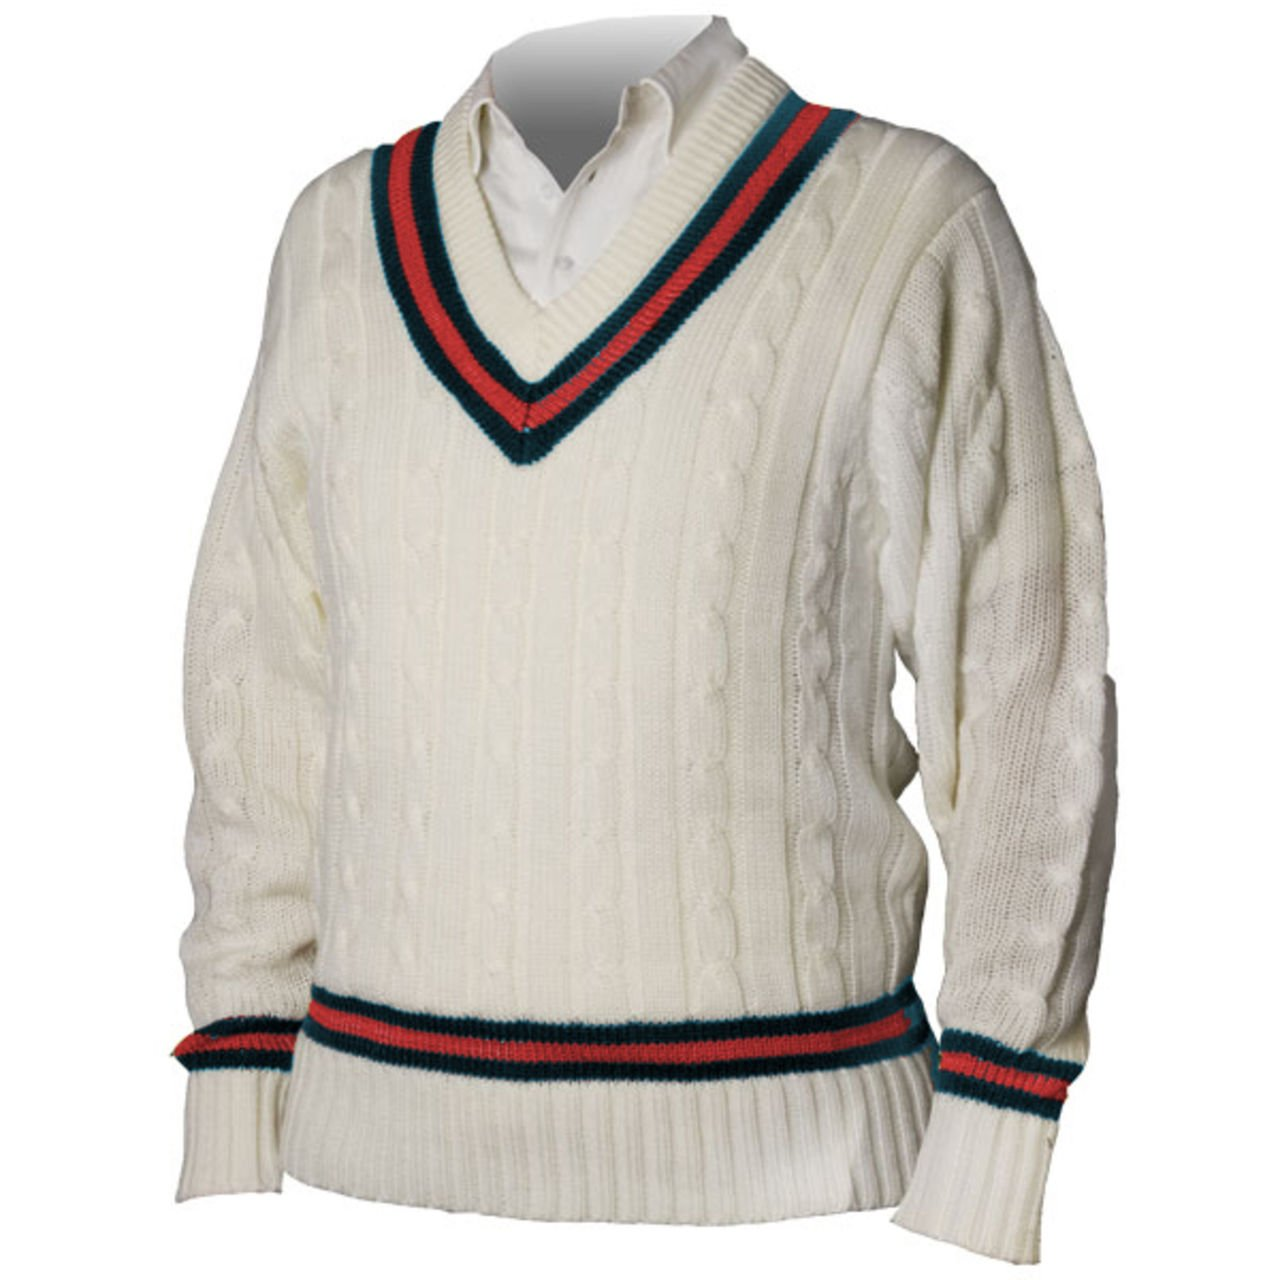 1960s Men's Sweaters Cricket Full Sleeve Sweater Acrylic Navy/Red $59.36 AT vintagedancer.com